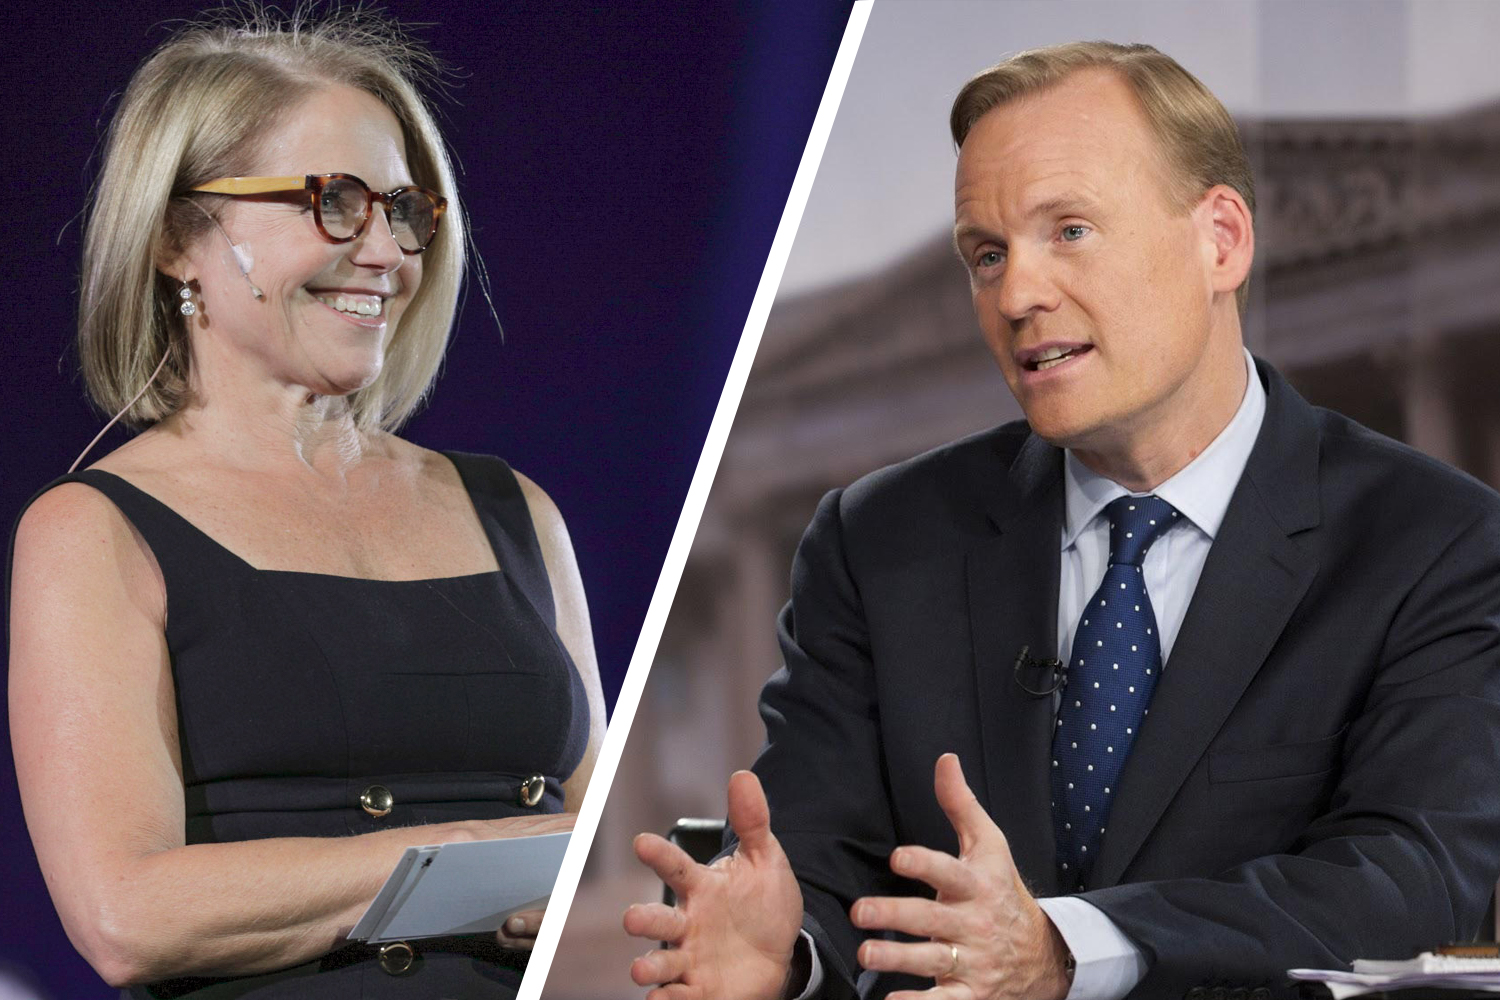 Katie Couric and John Dickerson